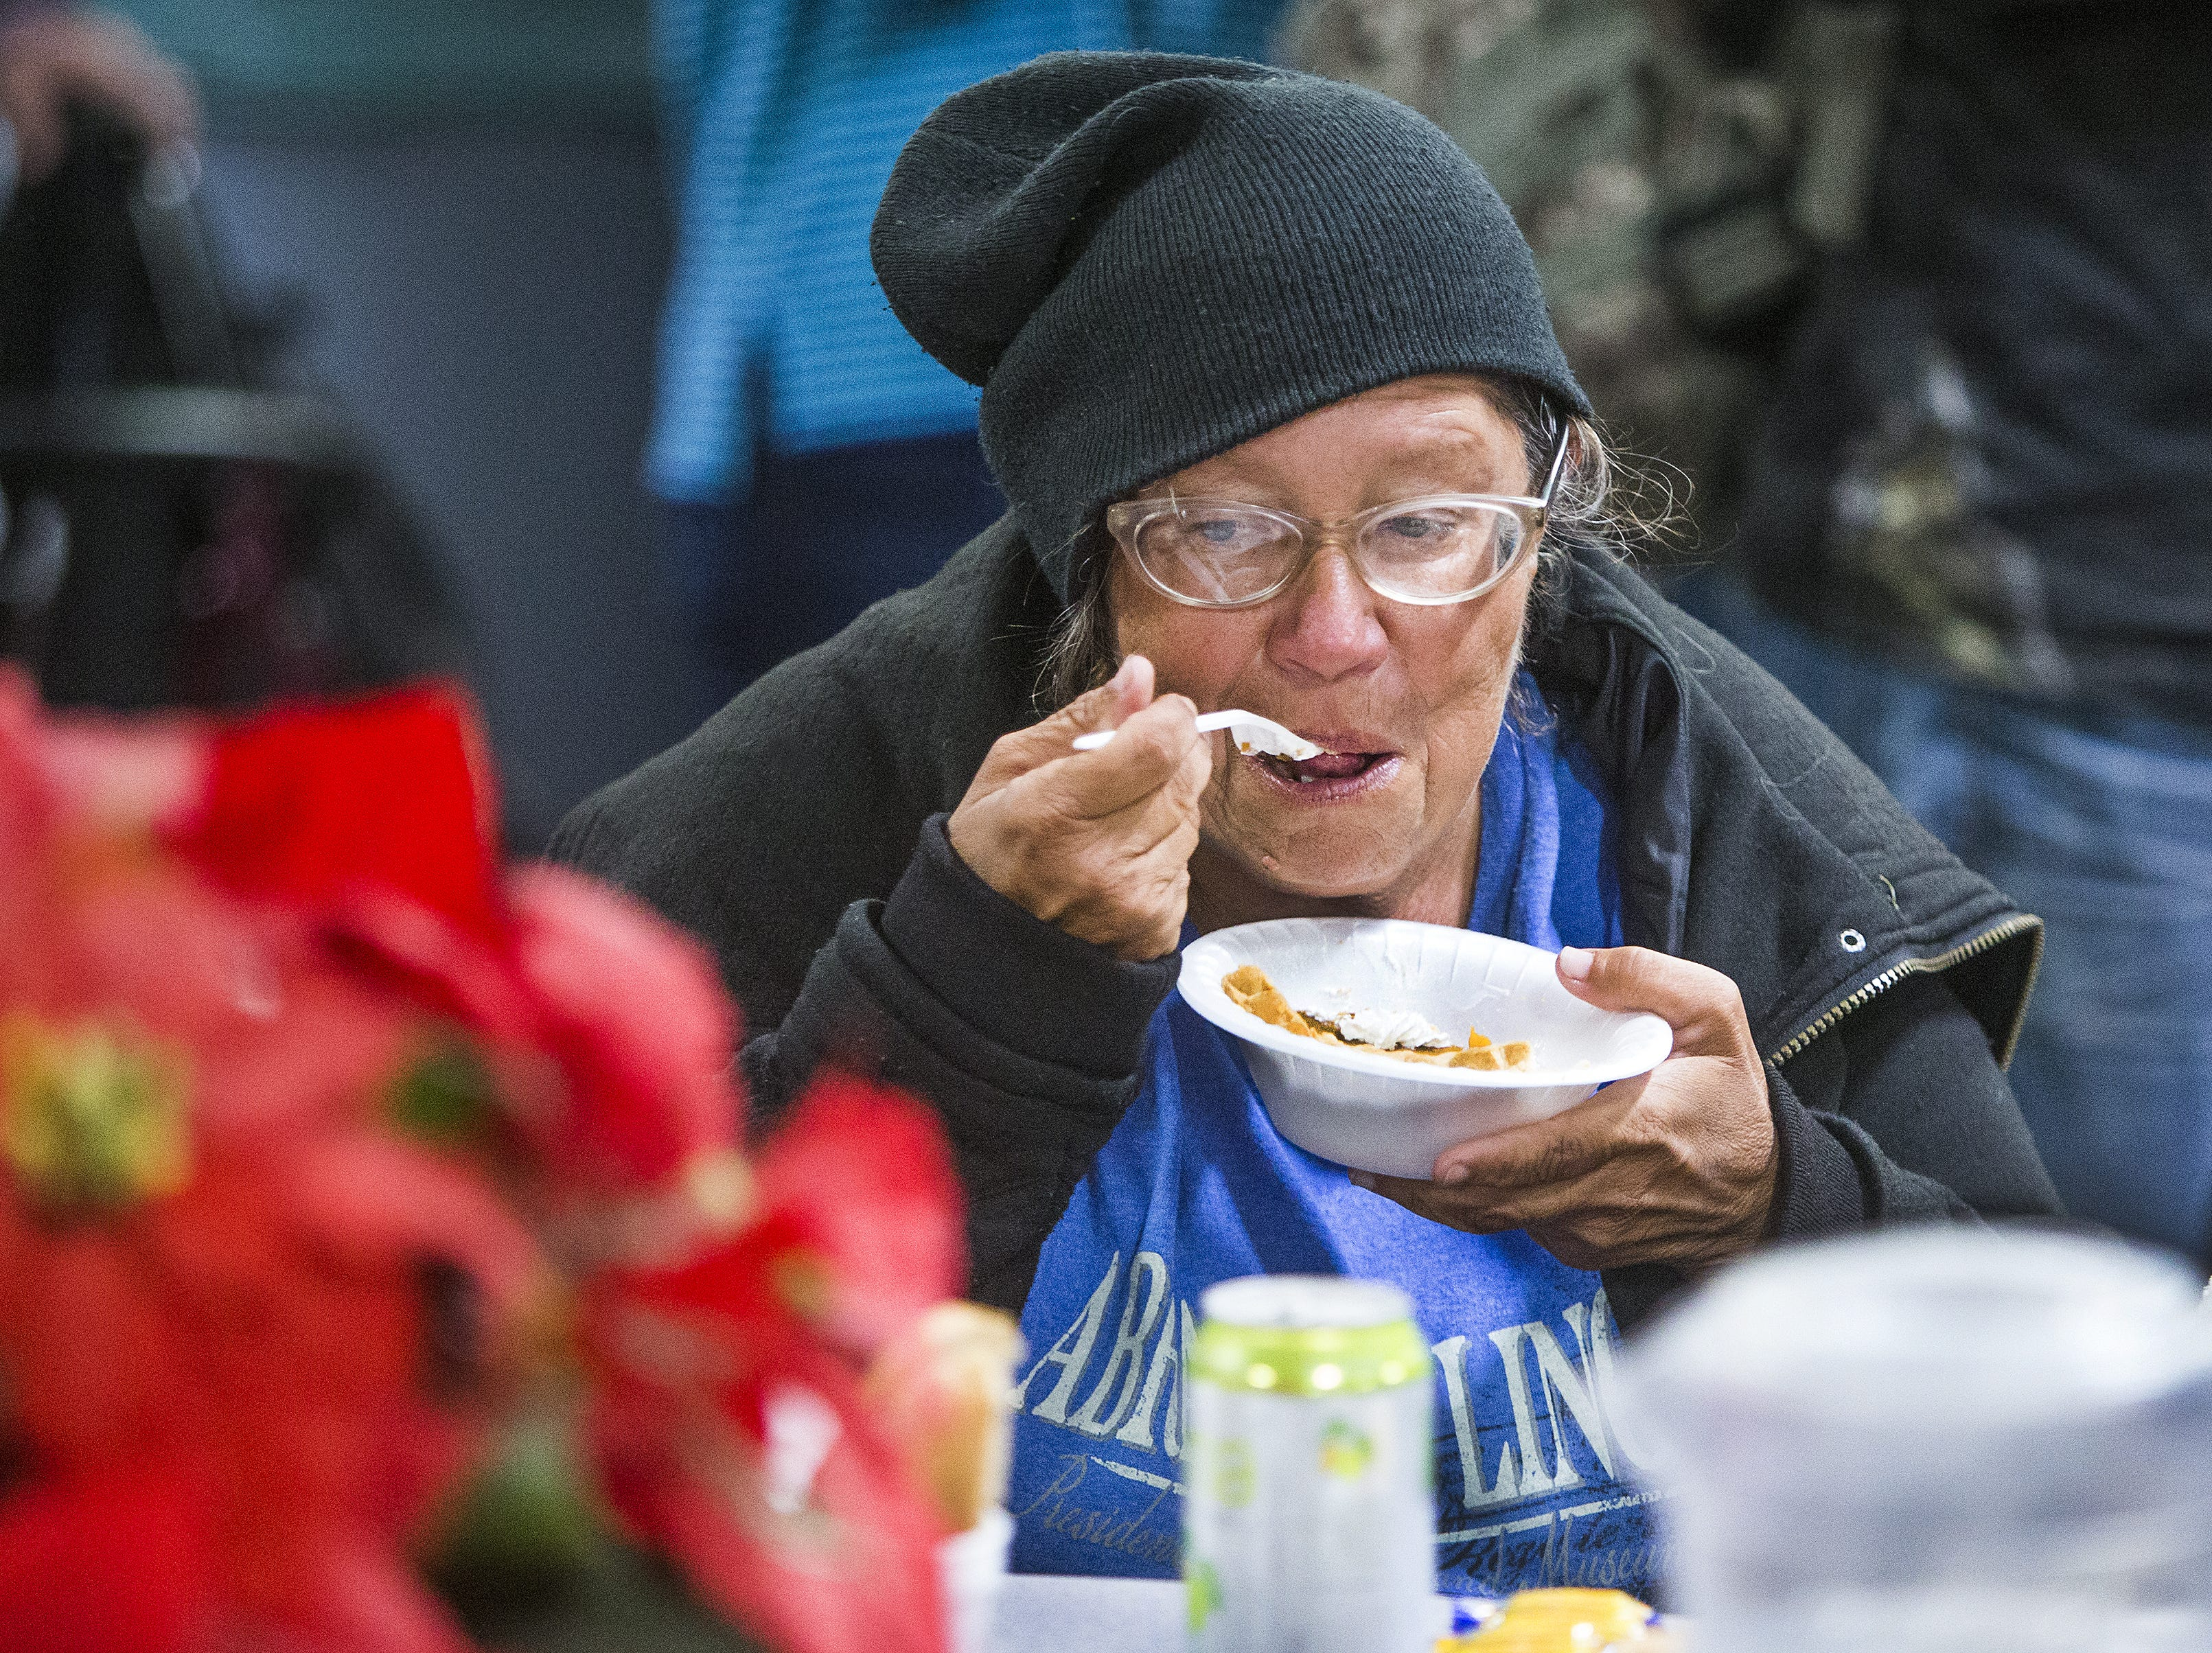 Dianal Tripp enjoys some pumpkin pie at the Thanksgiving Day meal served by volunteers with the St. Vincent de Paul Society. Hundreds enjoyed turkey, mashed potatoes and pumpkin pie at the Human Services Campus Dining Room in Phoenix, Thursday, November 22, 2018.